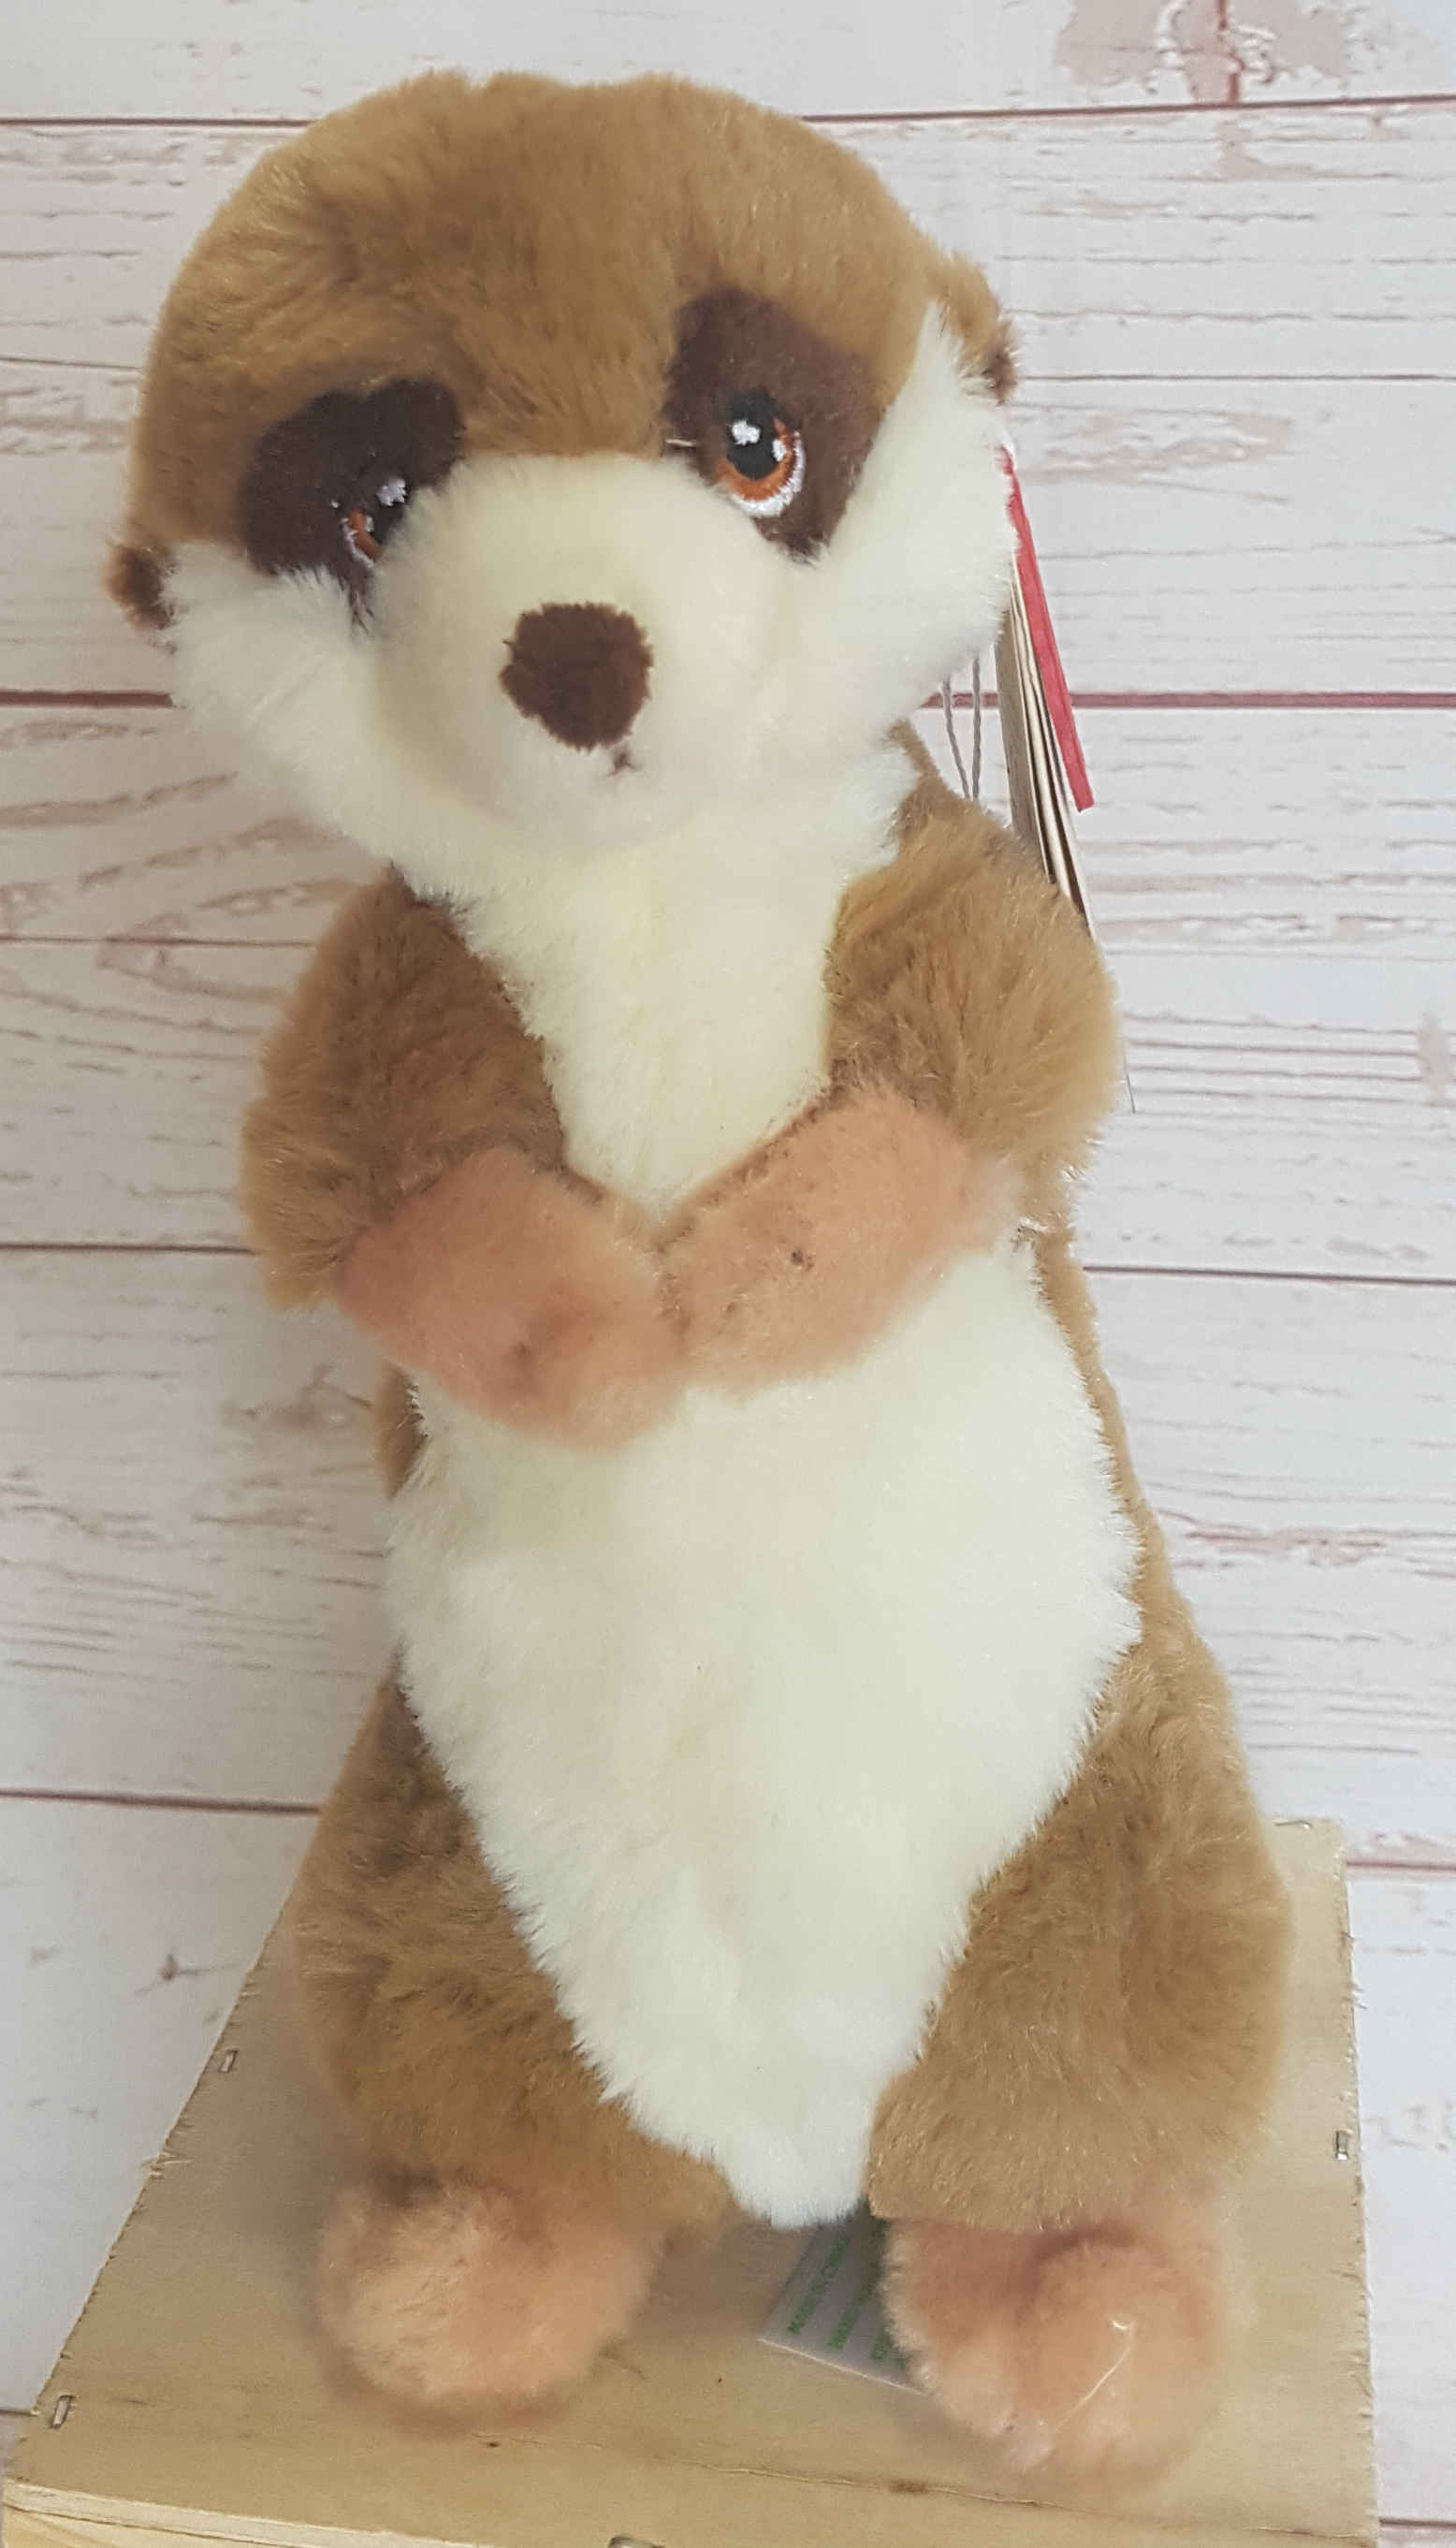 THIS CUTE LITTLE MEERKAT IS SURE TO DELIGHT, ONE HUNDRED PERCENT HUGGABLE.